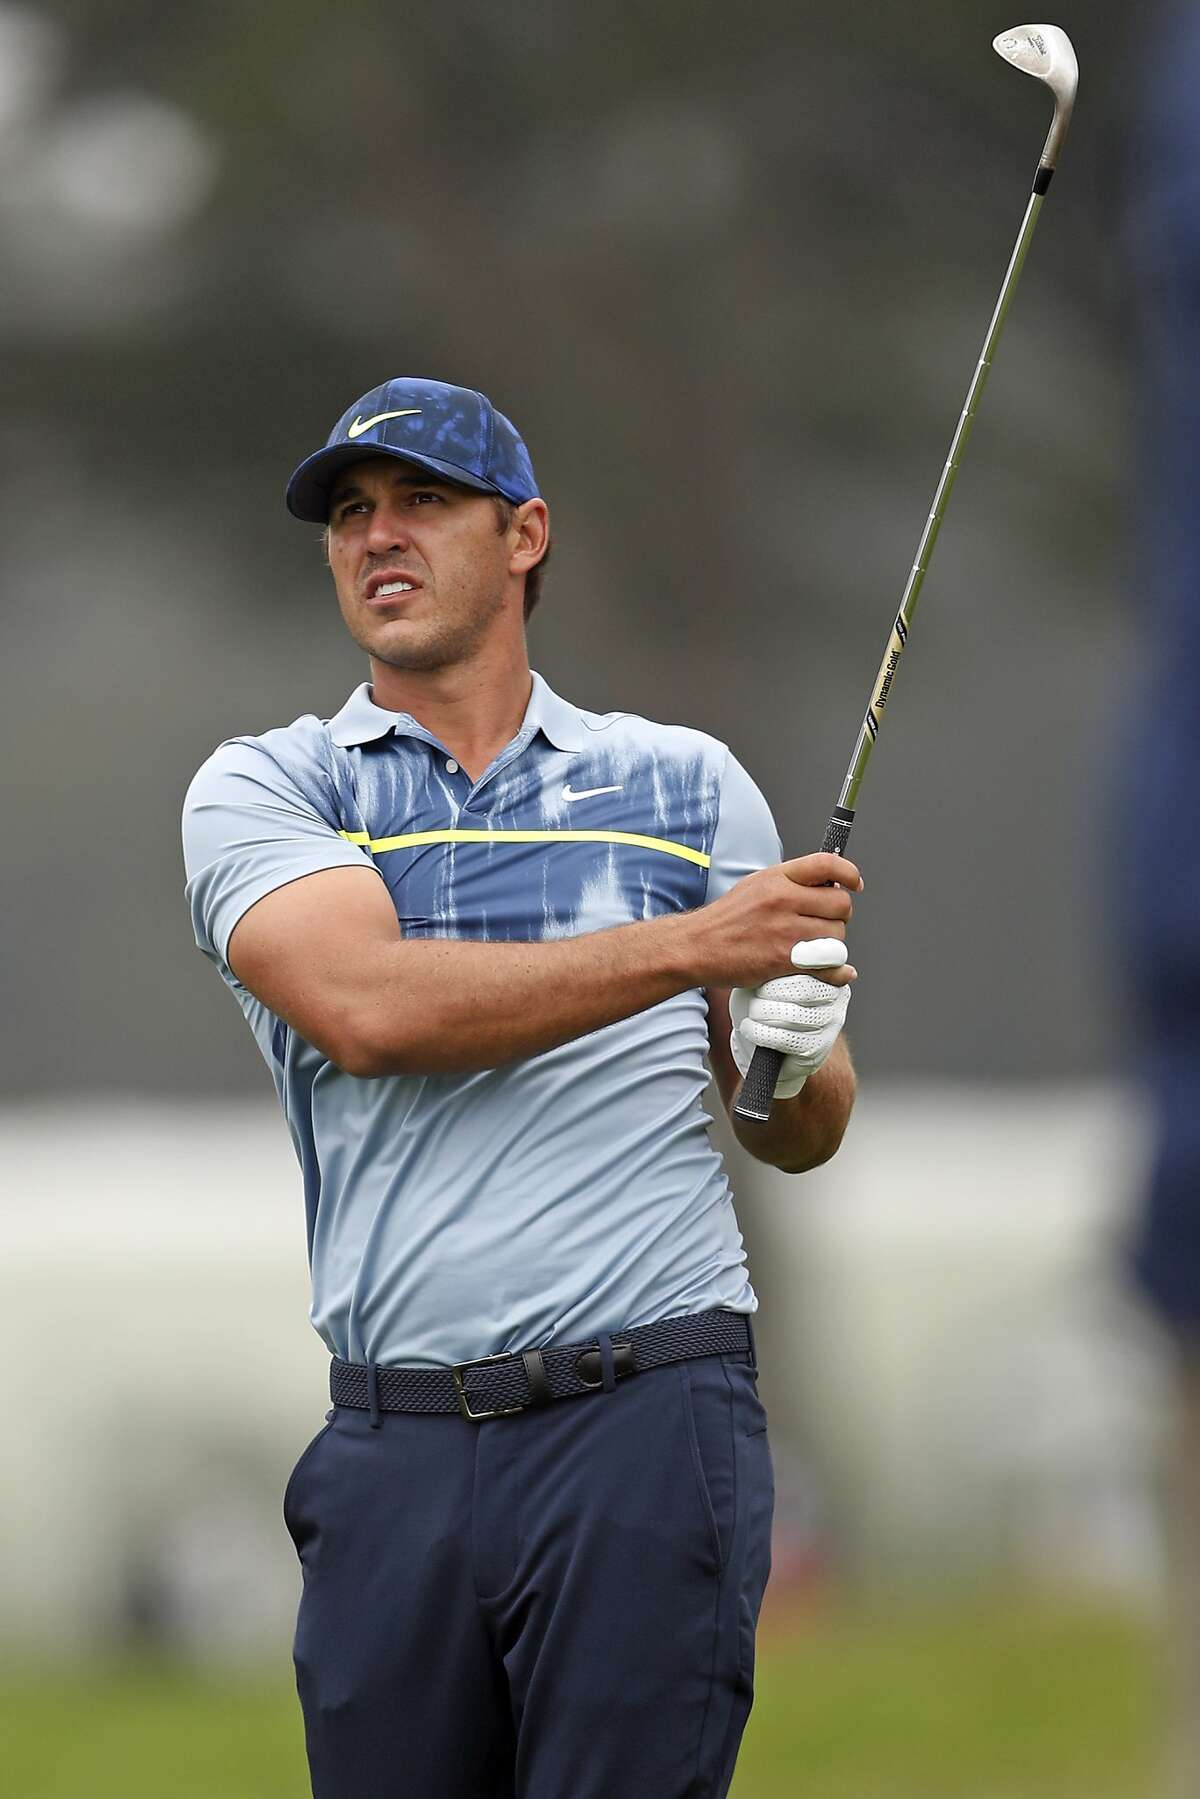 Brooks Koepka watches his approach shot to 1st green during final round of PGA Championship at TPC Harding Park in San Francisco, Calif., on Sunday, August 9, 2020.